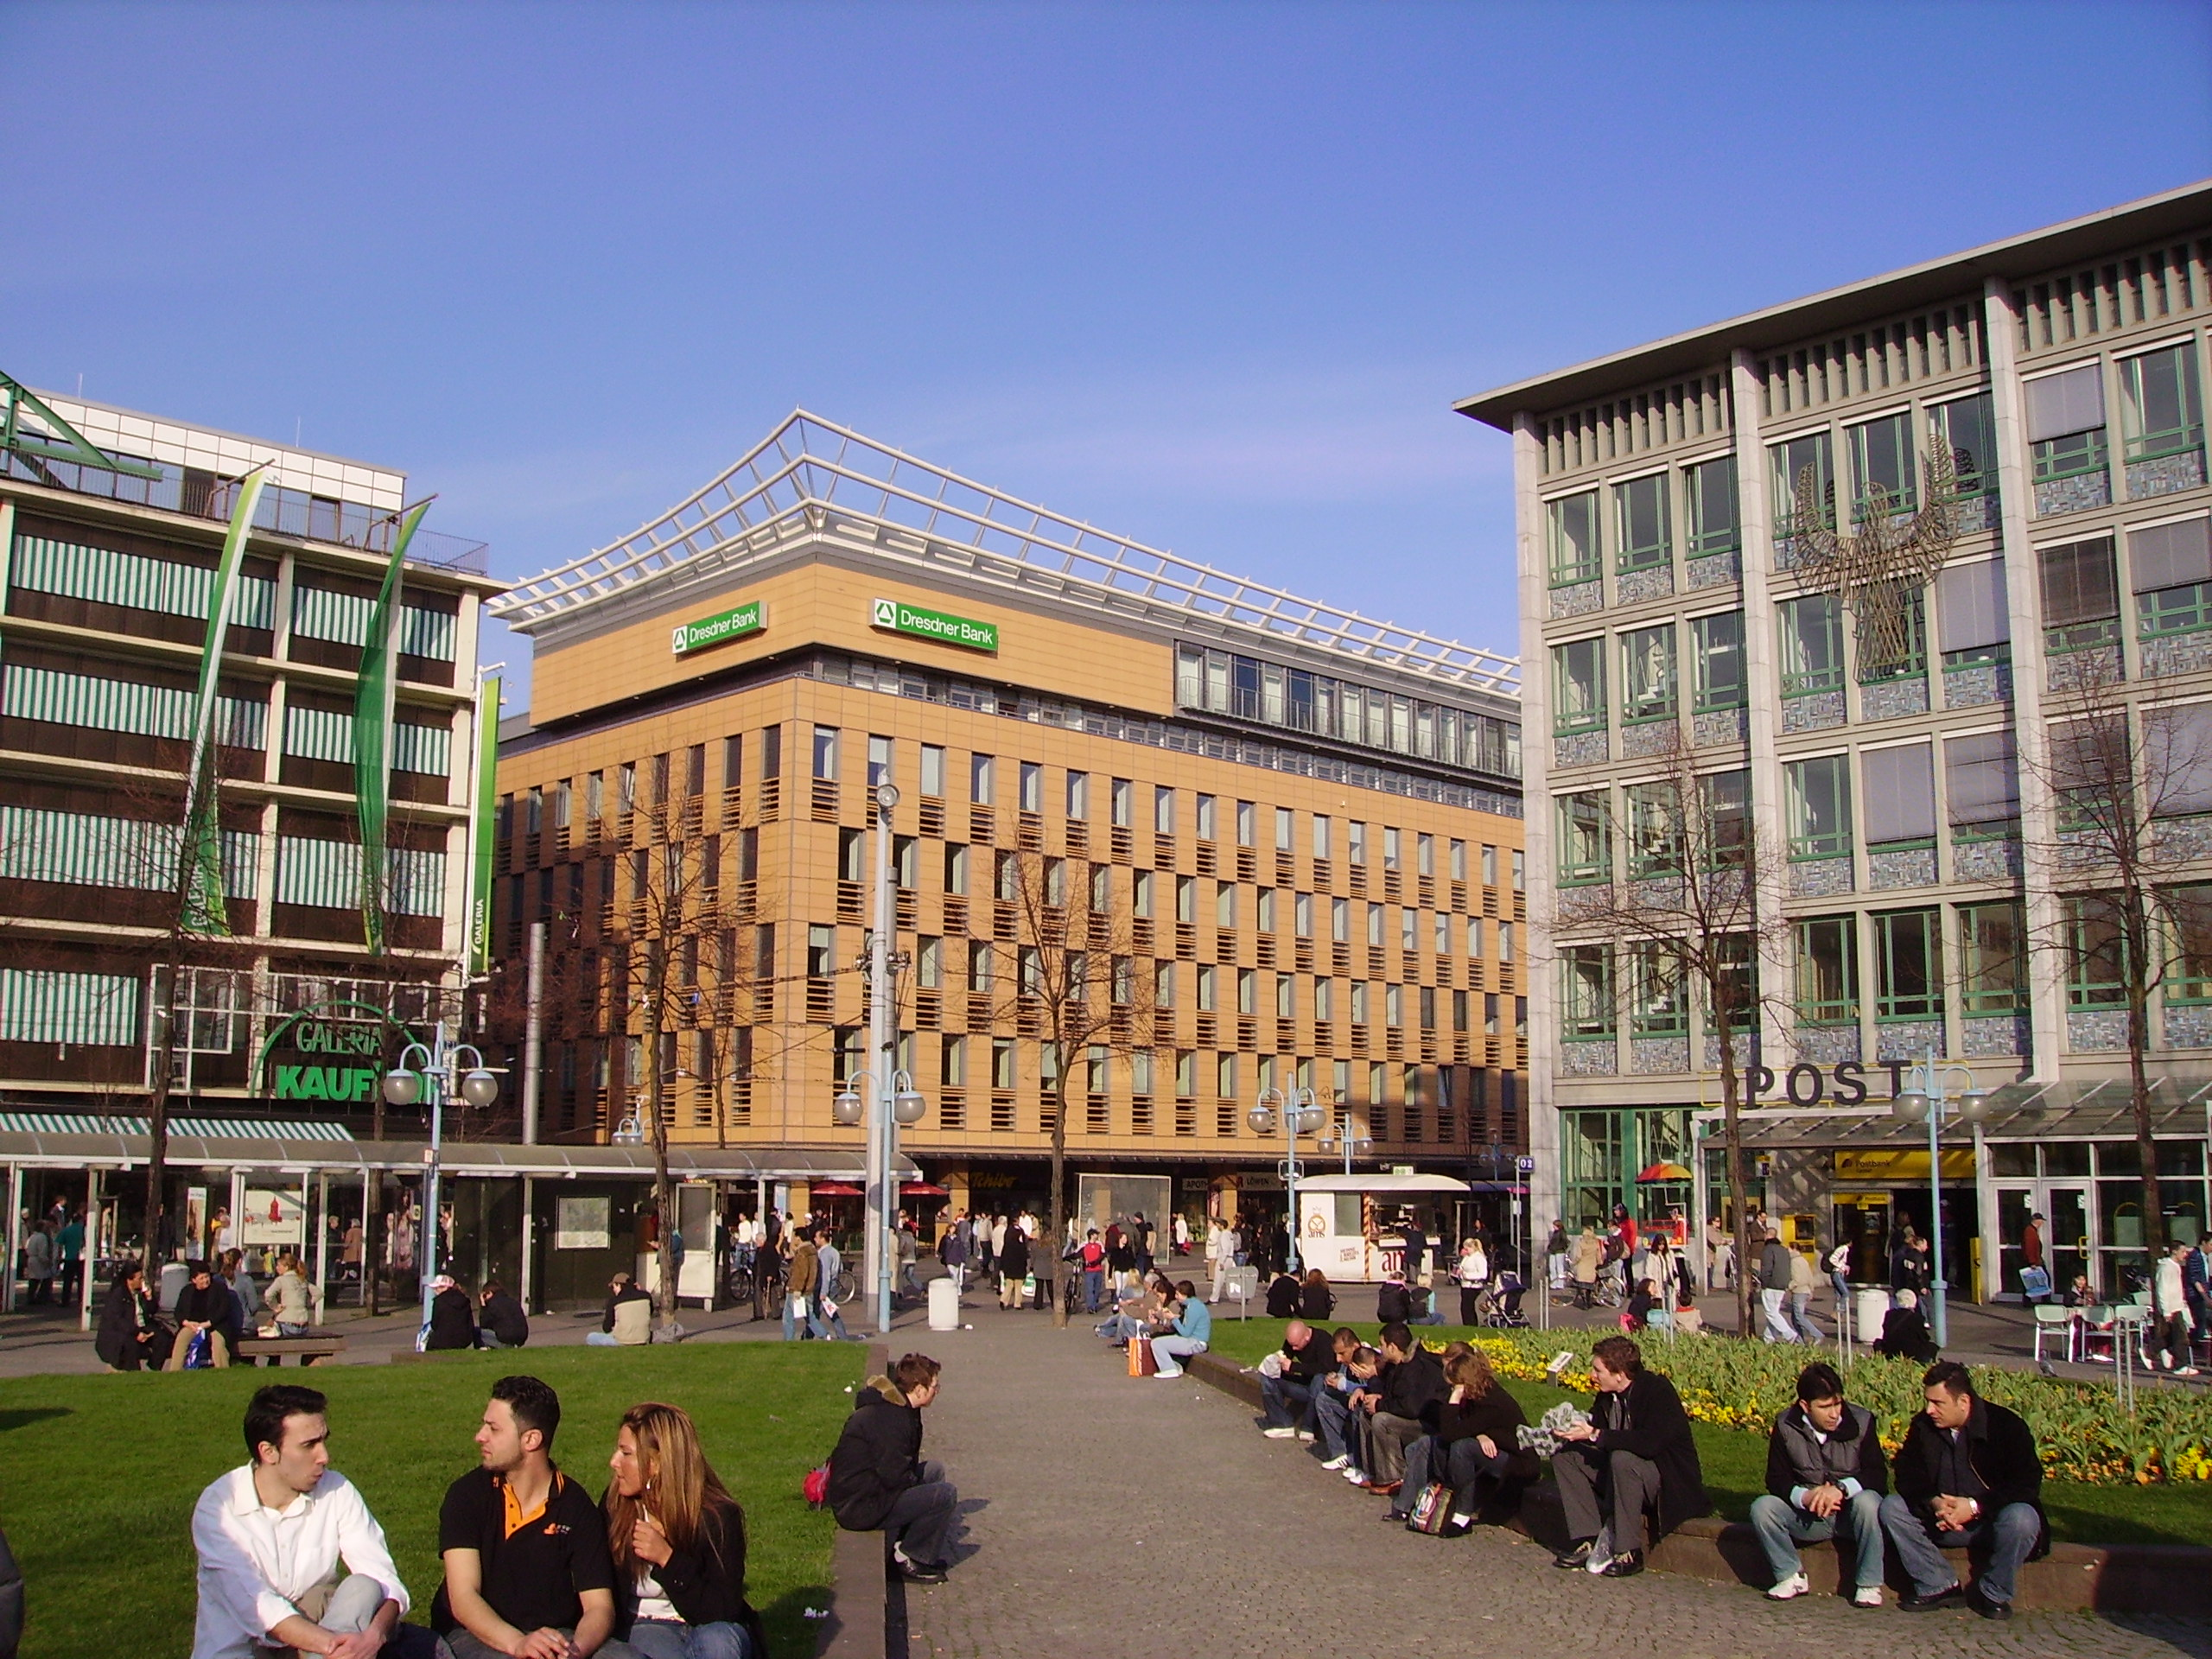 Mannheim Germany  city images : Original file ‎ 2,560 × 1,920 pixels, file size: 1.18 MB, MIME ...